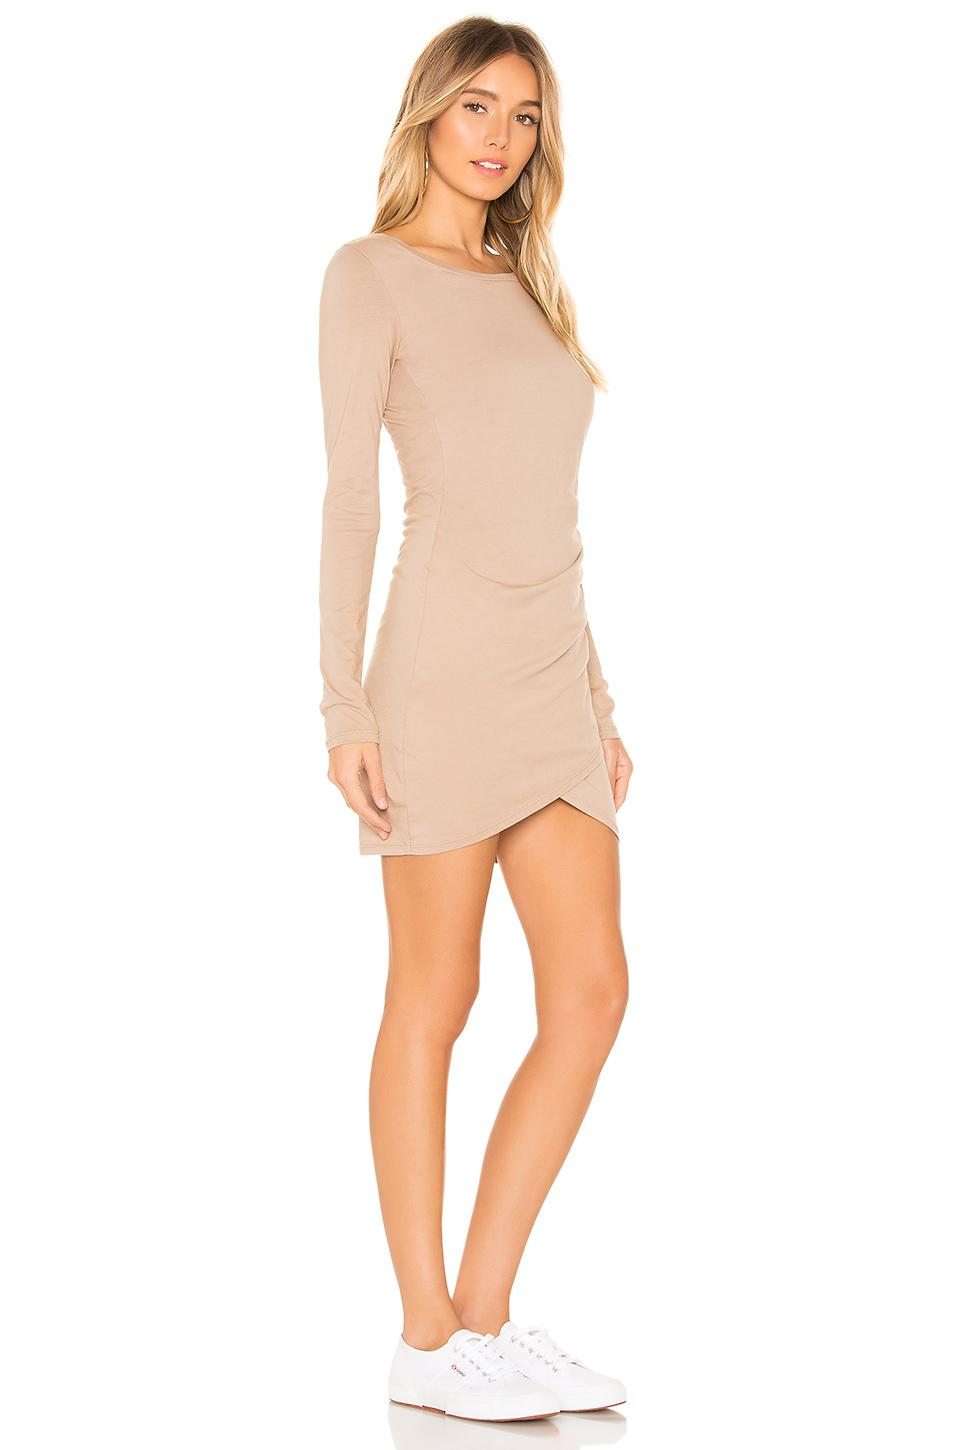 Bobi Multicolor Supreme Jersey Ruched Bodycon Dress In Tan Lyst View Fullscreen